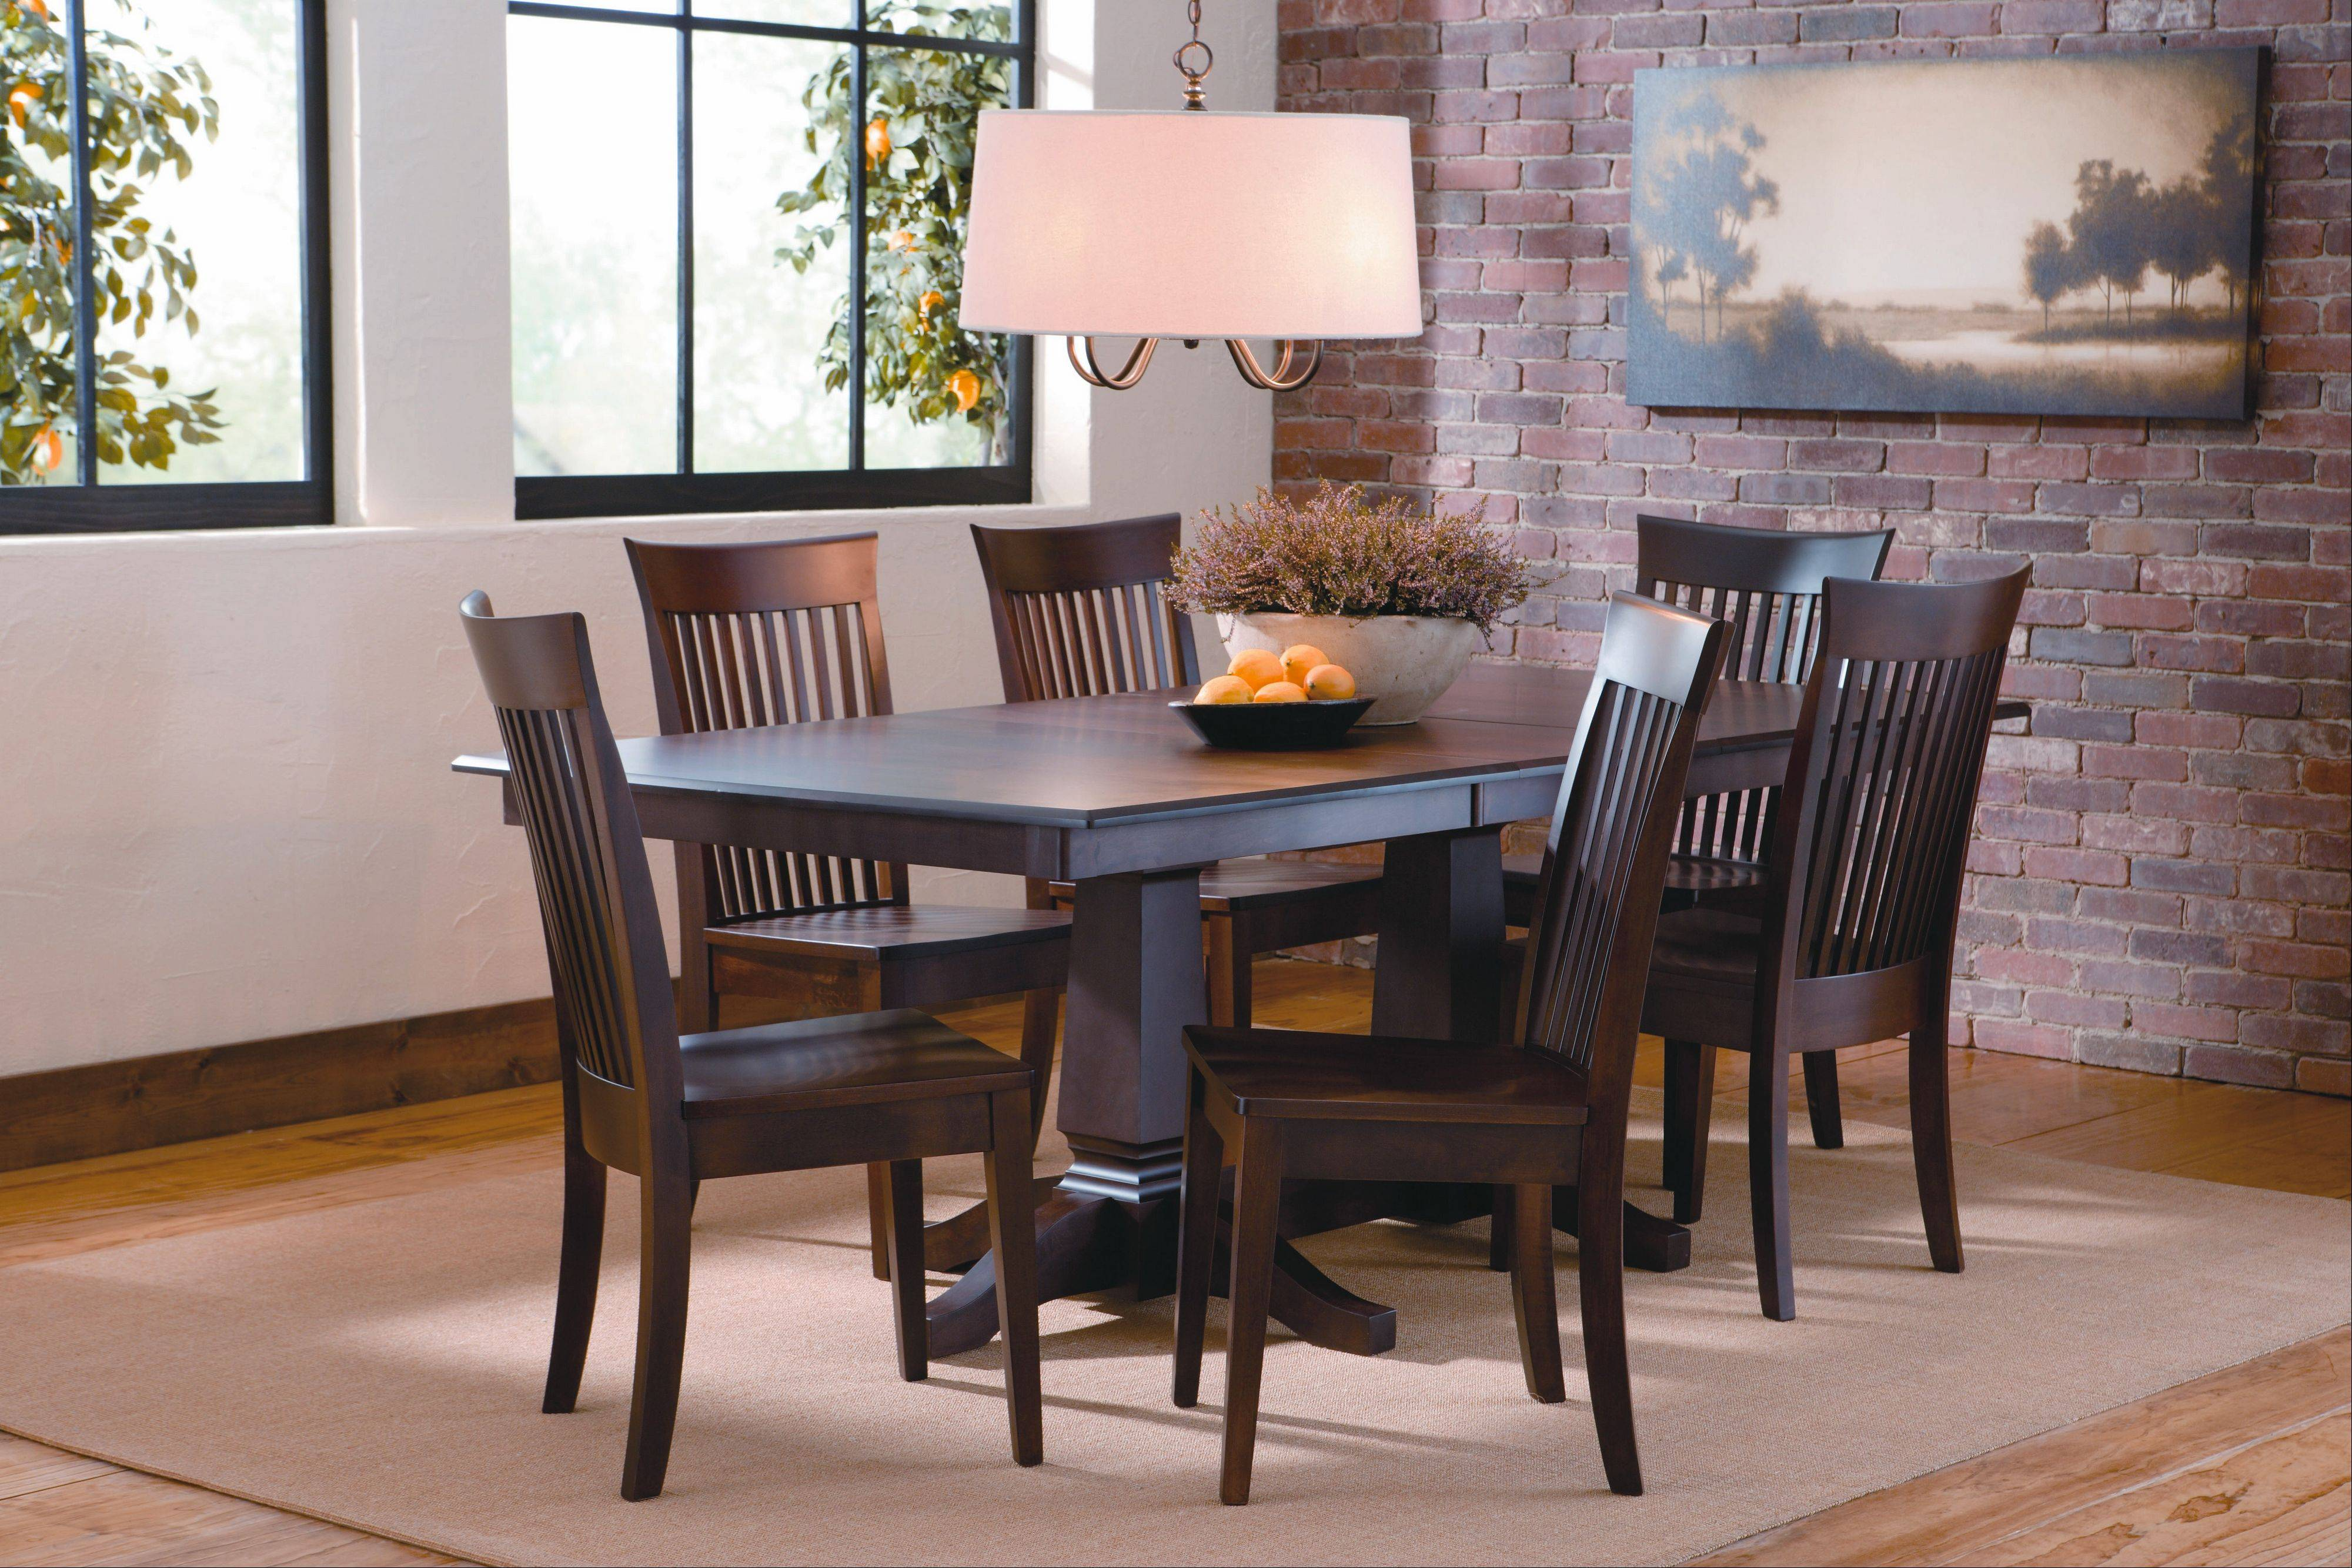 Area rugs can warm up a dining room with hardwood flooring.